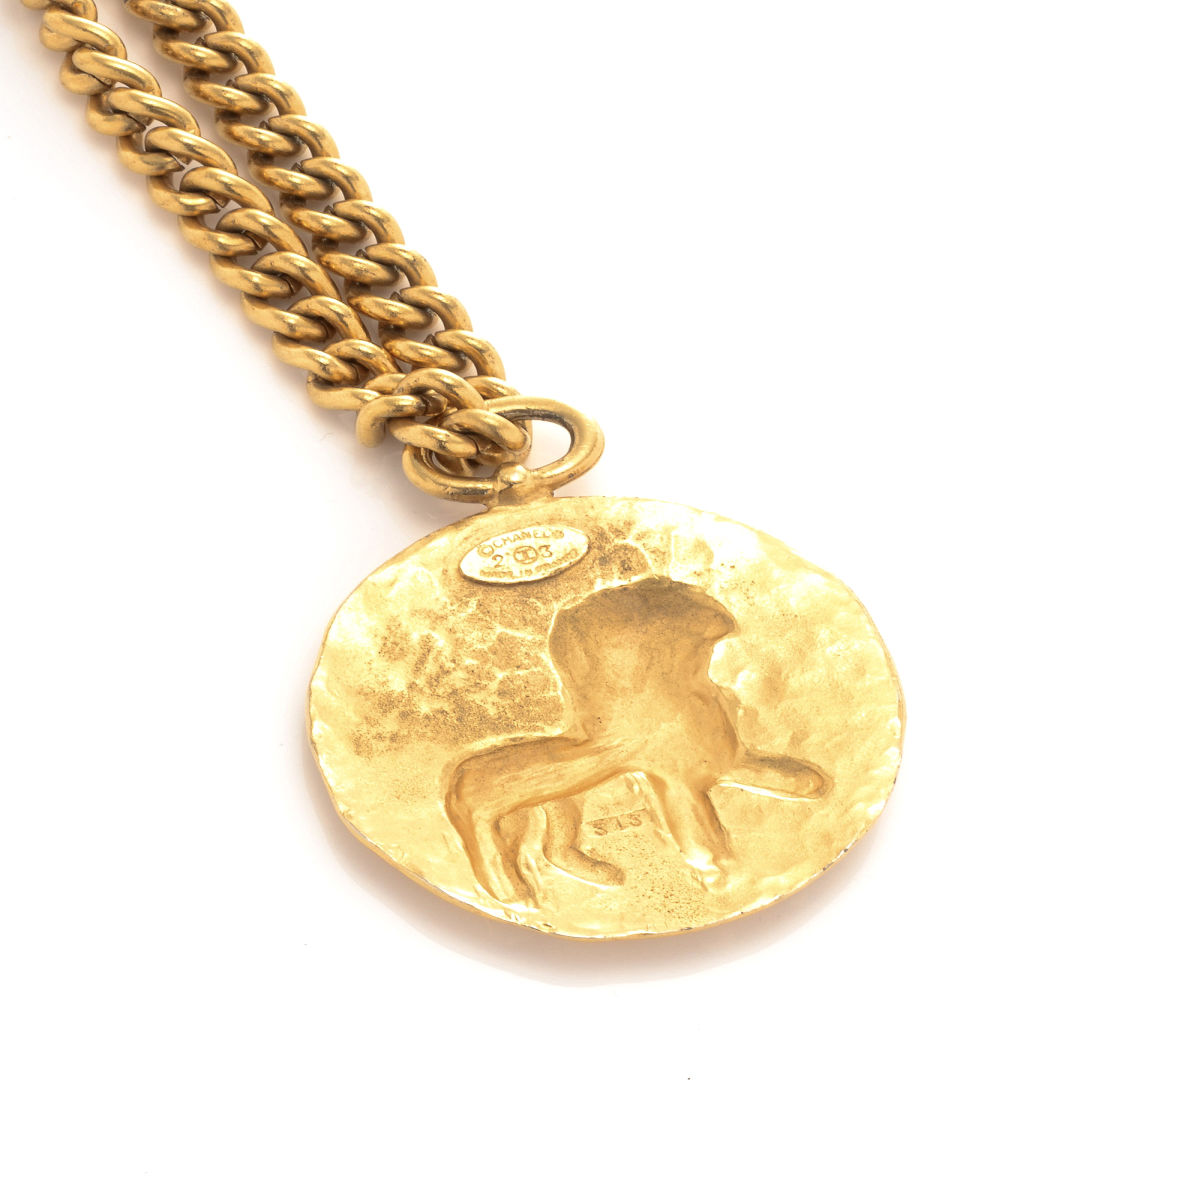 medallion rebecca bree statement sale gold plated celsus library shop garmentory necklace of necklaces card pamela